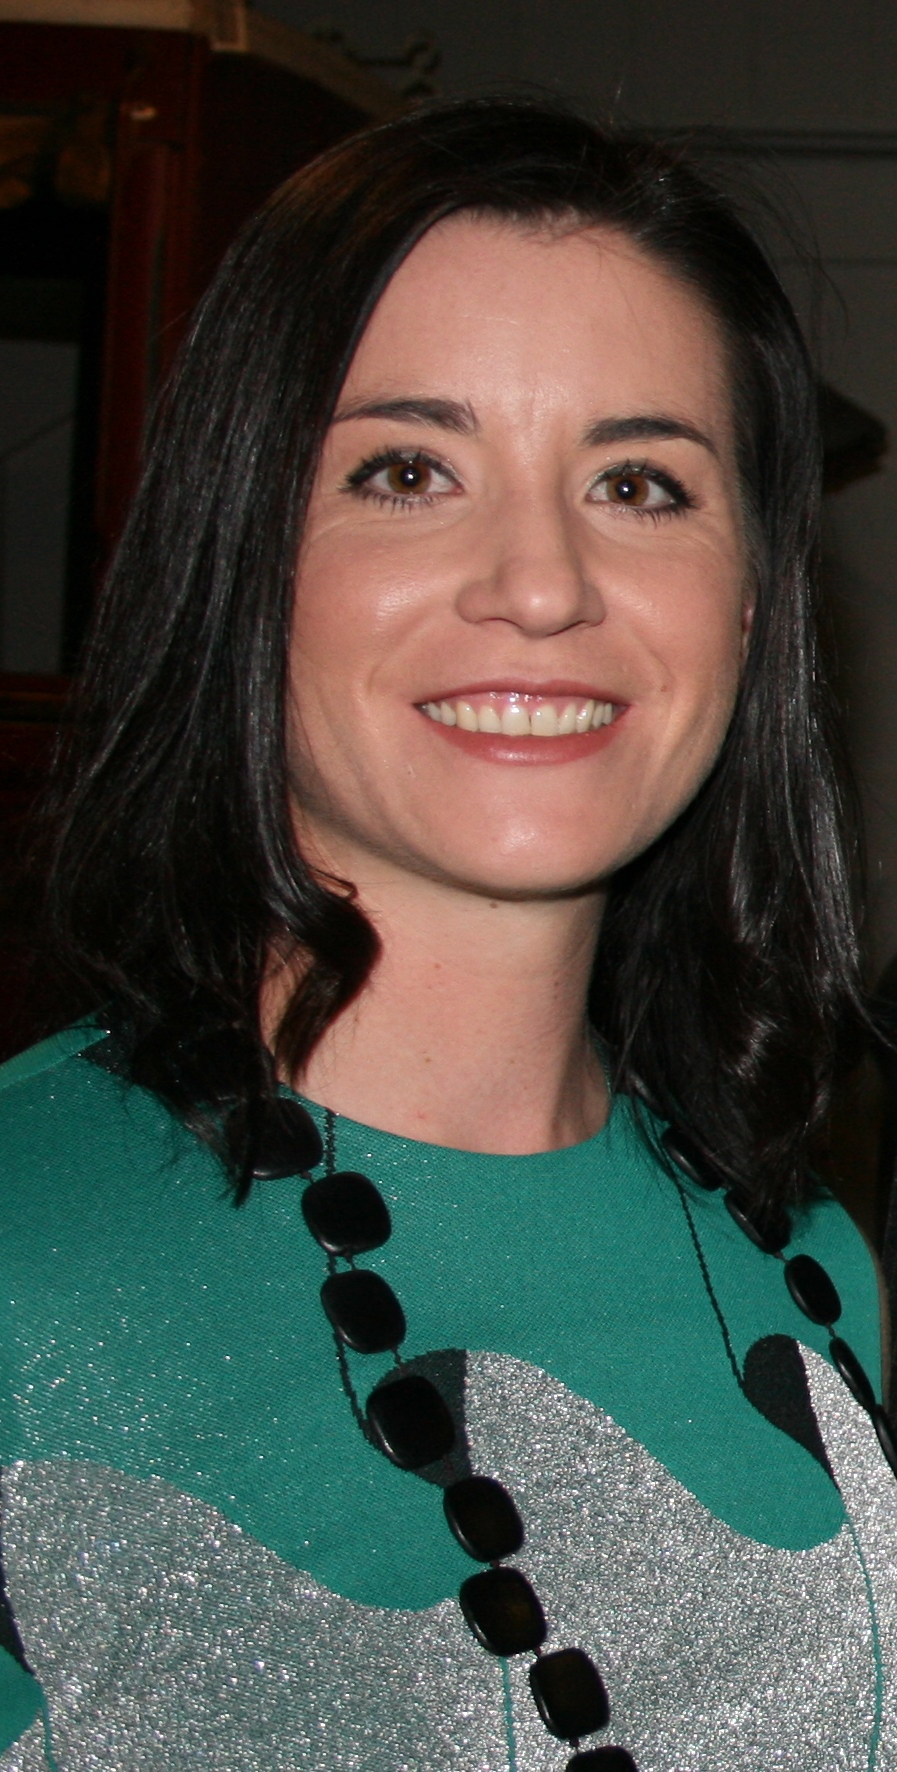 Image of Prue Cook, manager of online communities for GRDC